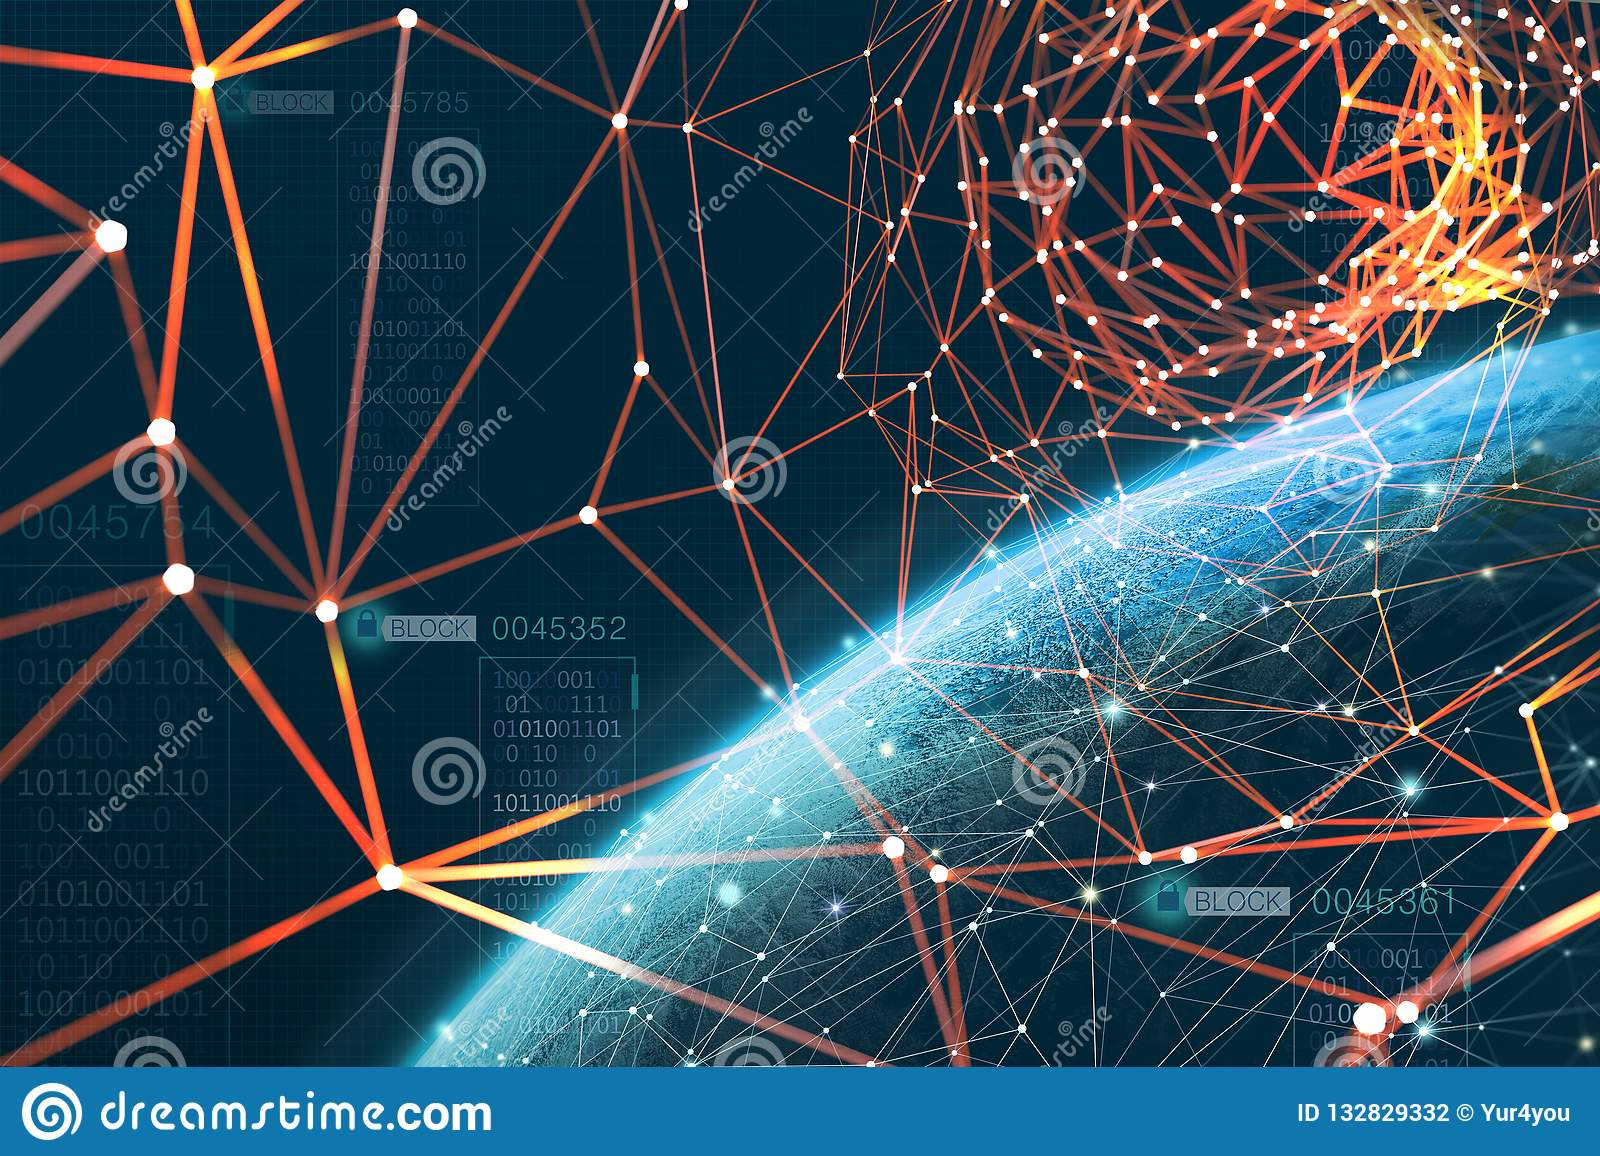 The planet is surrounded by a global information network. Blockchain technology protects data. Era of artificial intelligence